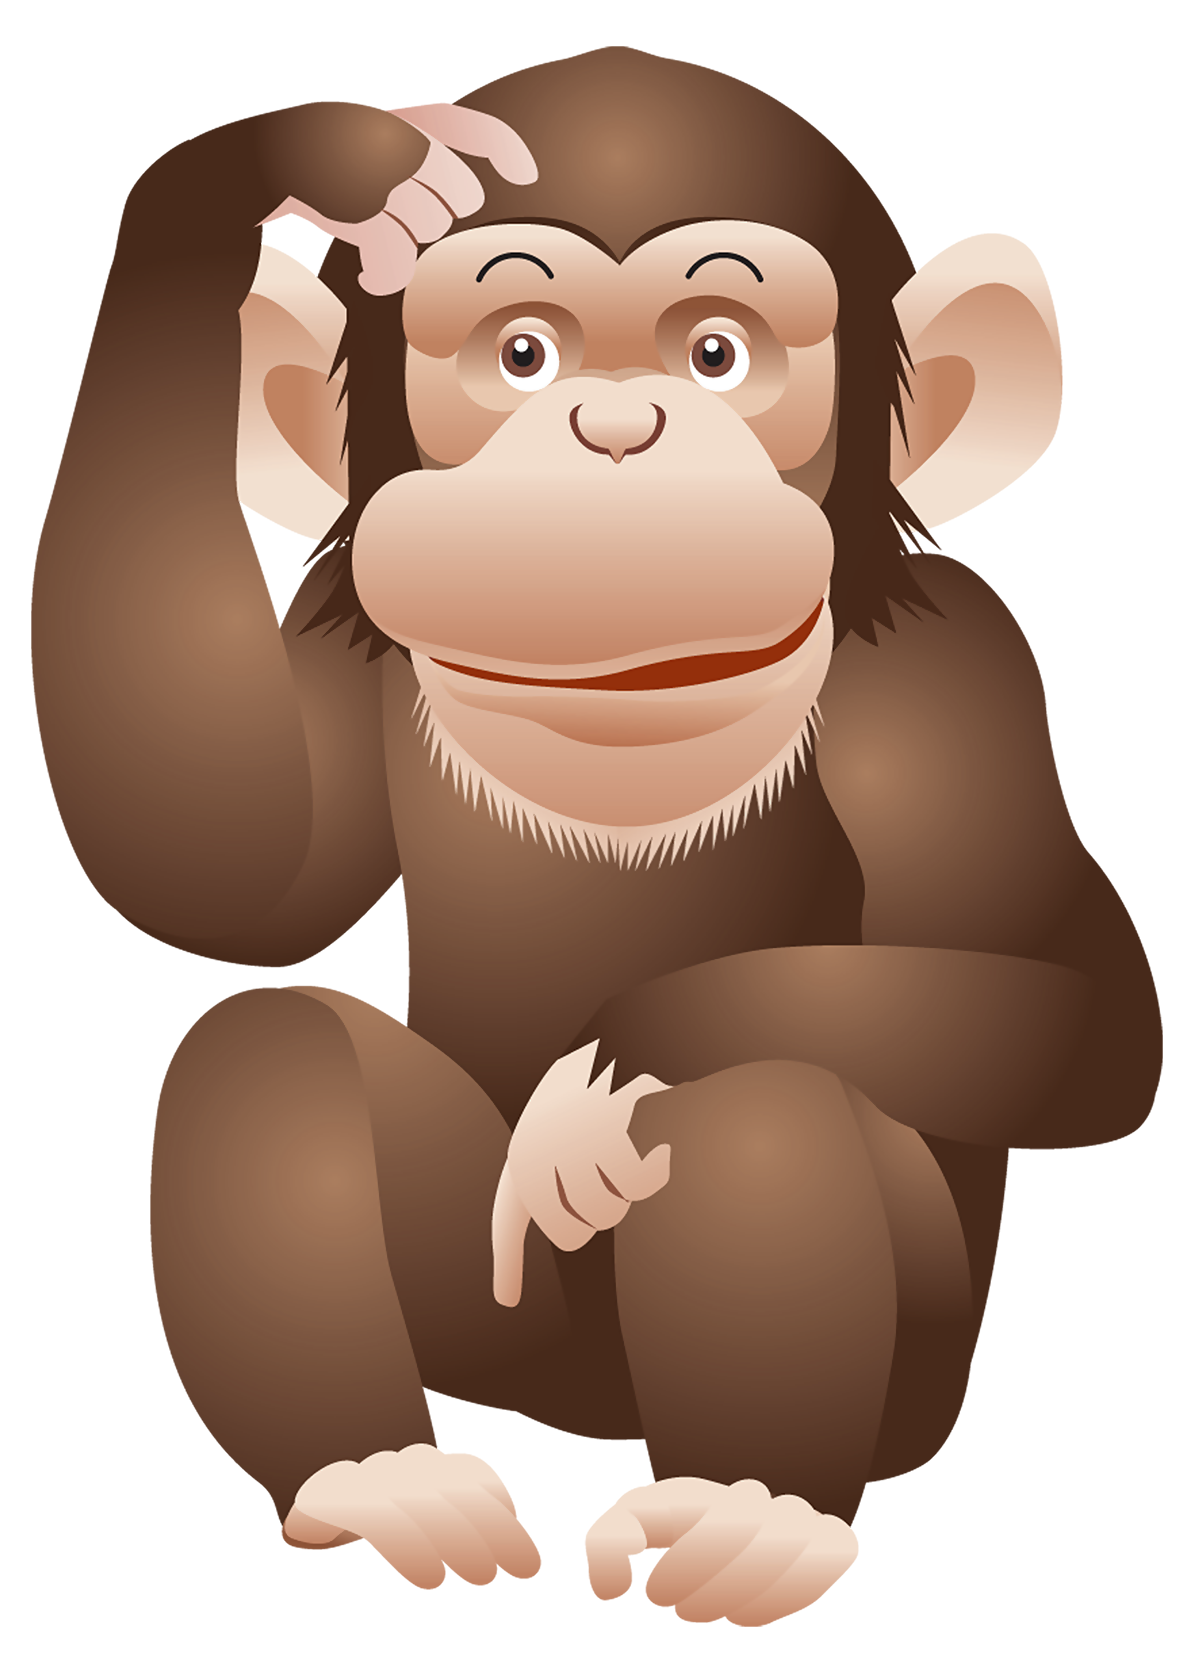 picture free stock Monkey png free images. Ape clipart transparent background